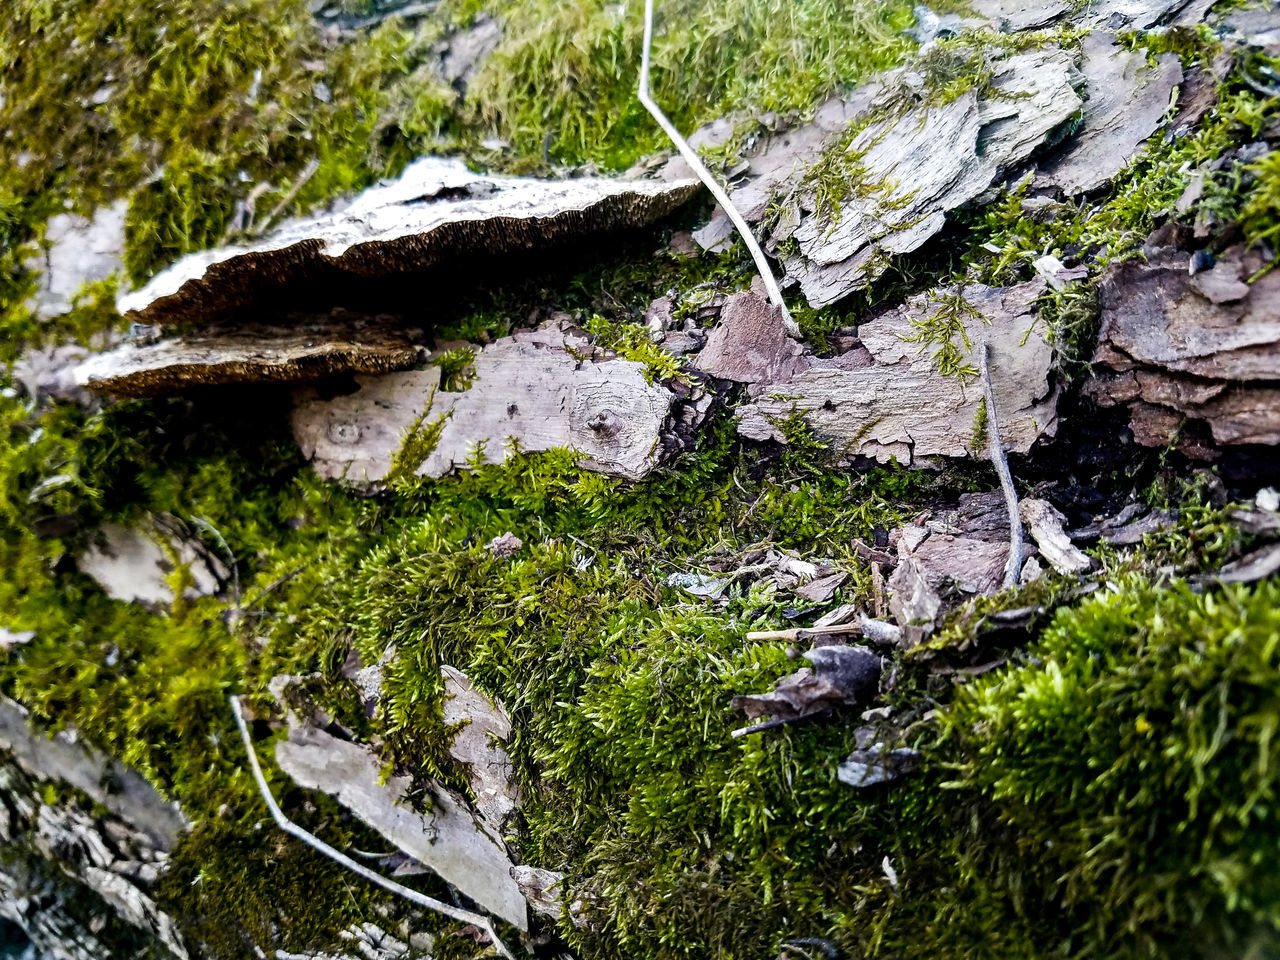 Growth Nature No People Outdoors Tree Day Plant Beauty In Nature Green Color Close-up Bark Of A Tree Minnesota Paynesville Crow River Nature Park Nature Park  Springtime Spring March Moss Mossy Mushrooms Fungus Fallen Tree Overgrown Forest